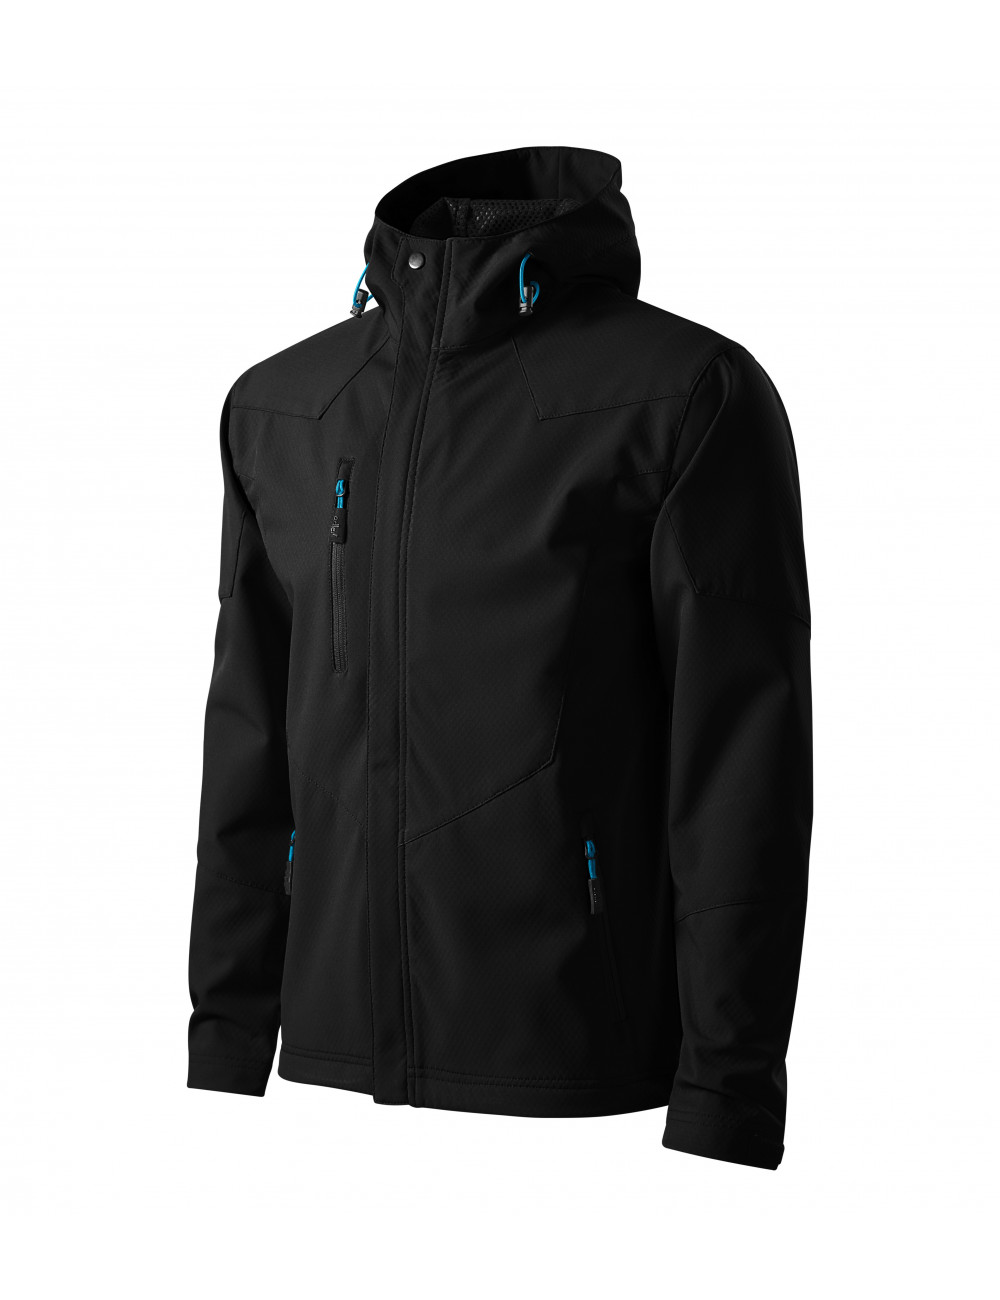 Men's raincoat softshell jackets / vests